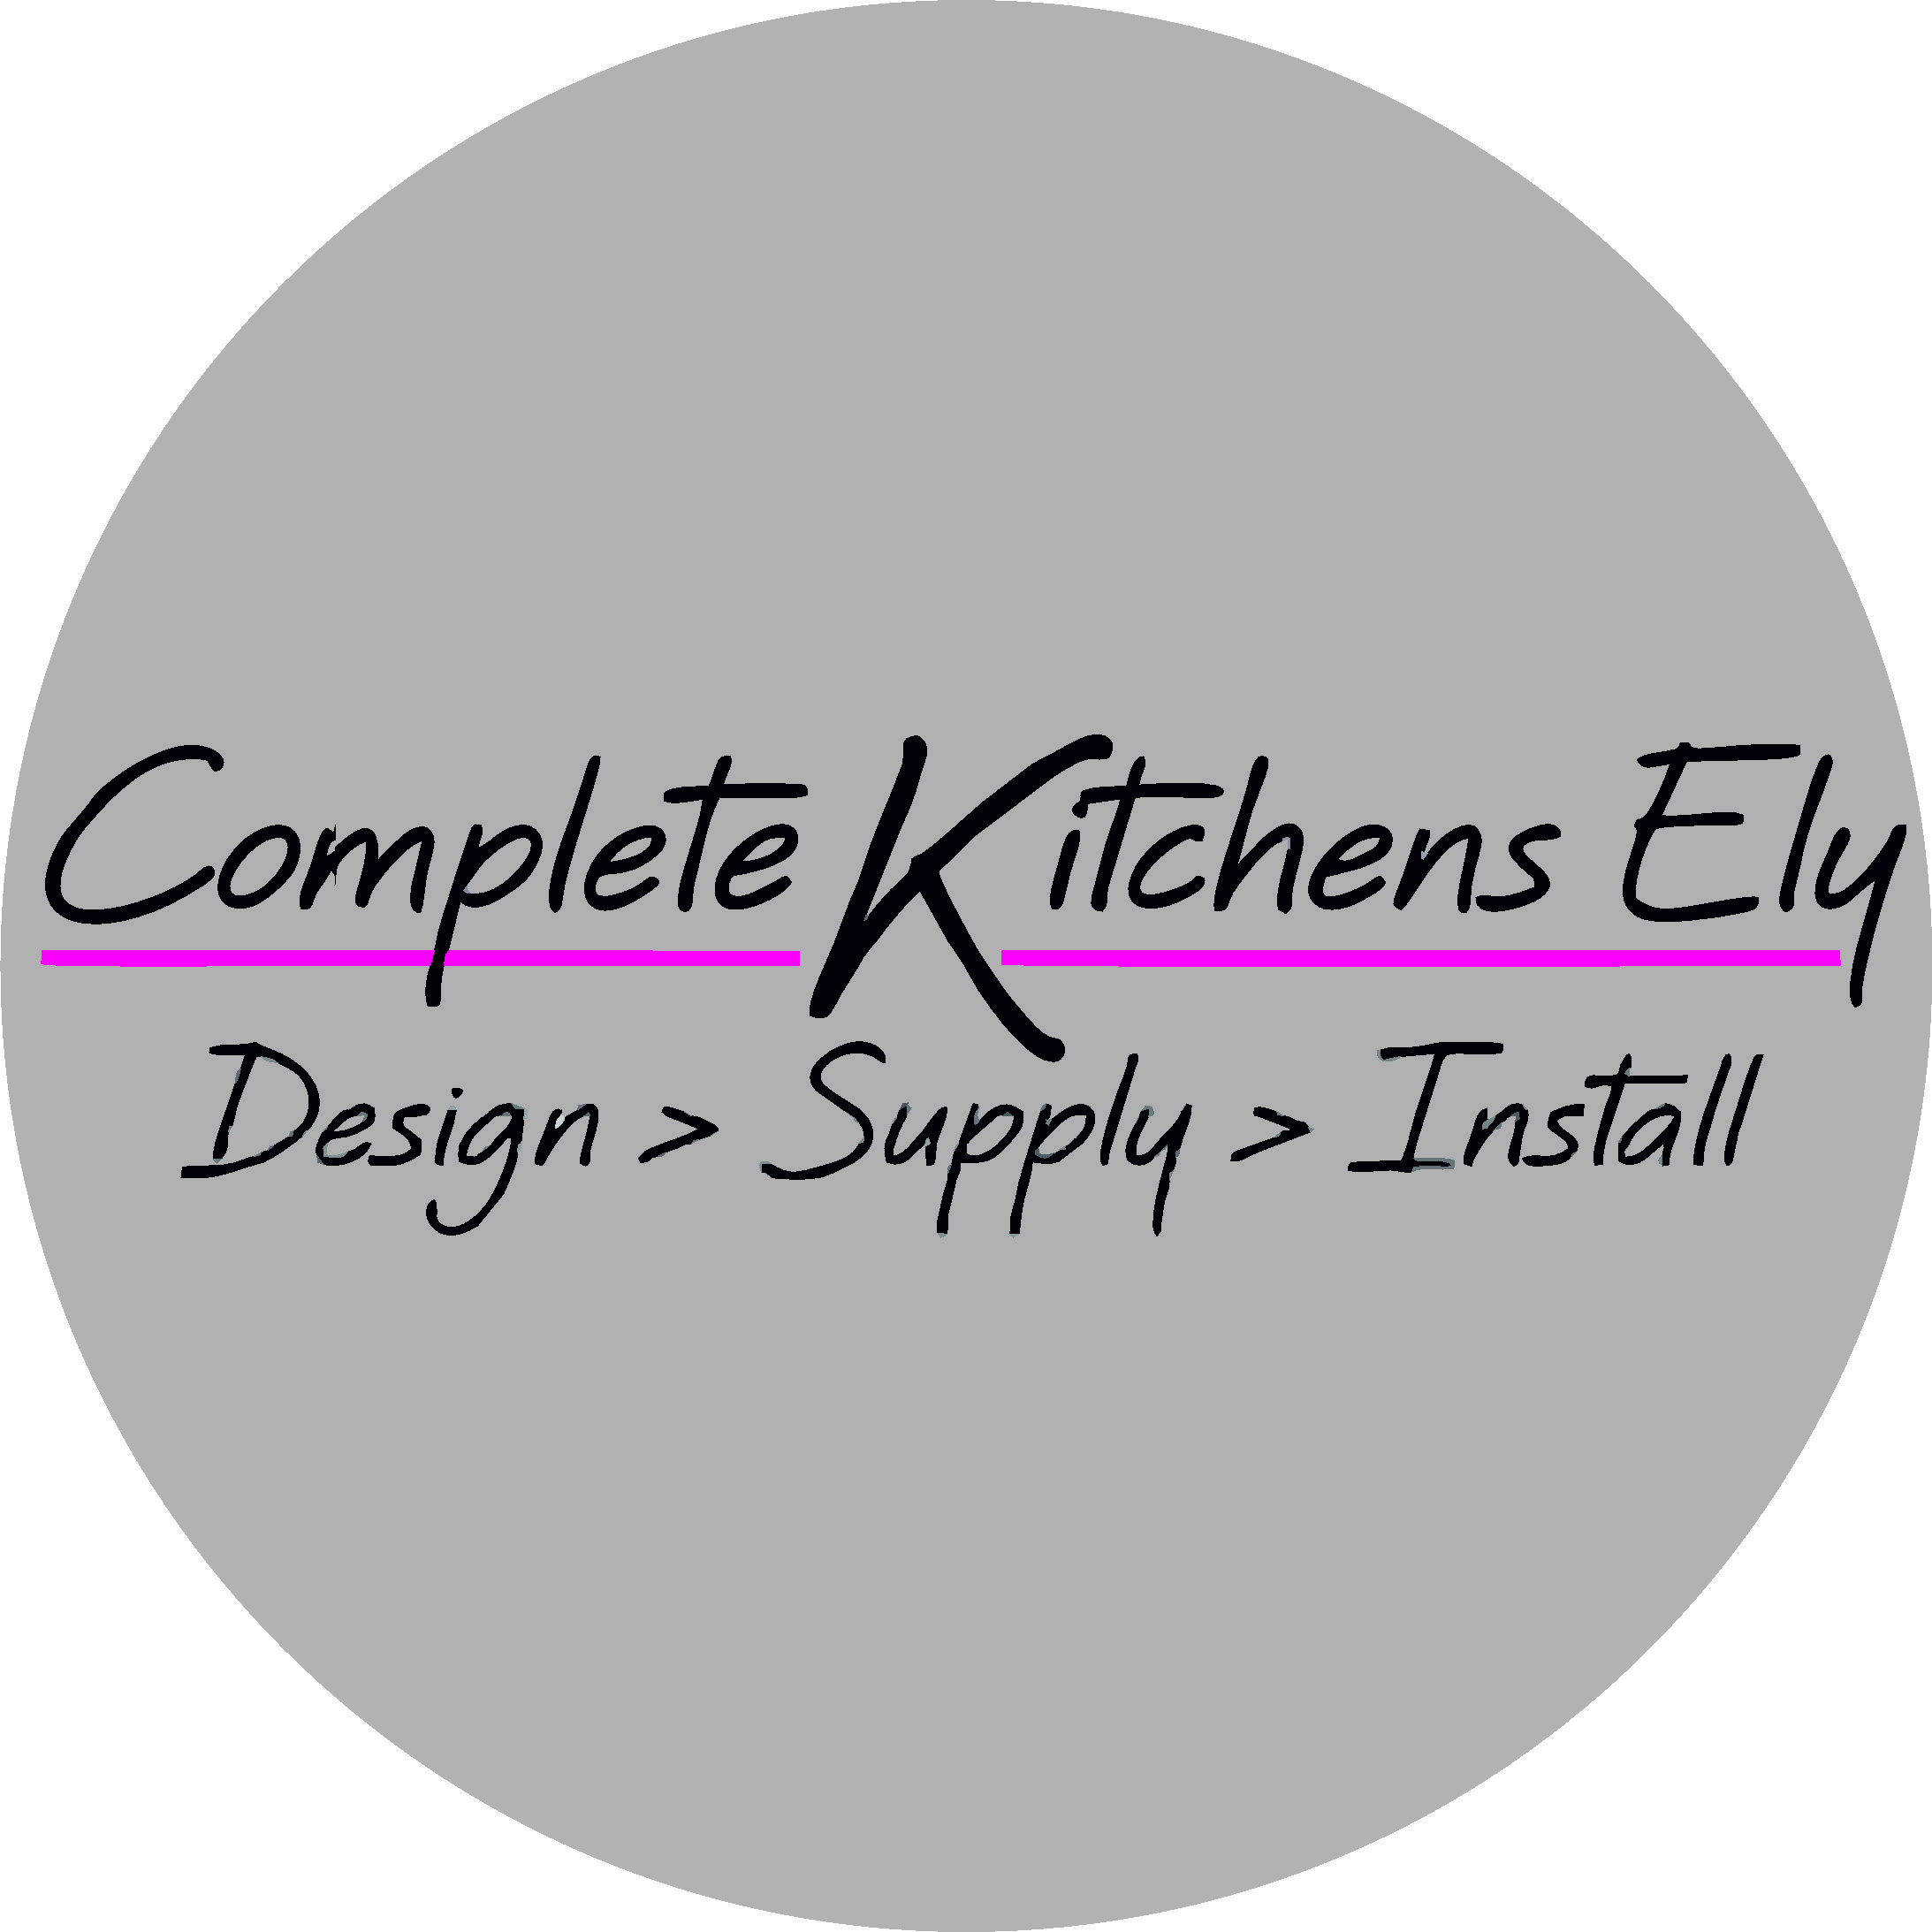 Paul Smart- Complete Kitchens